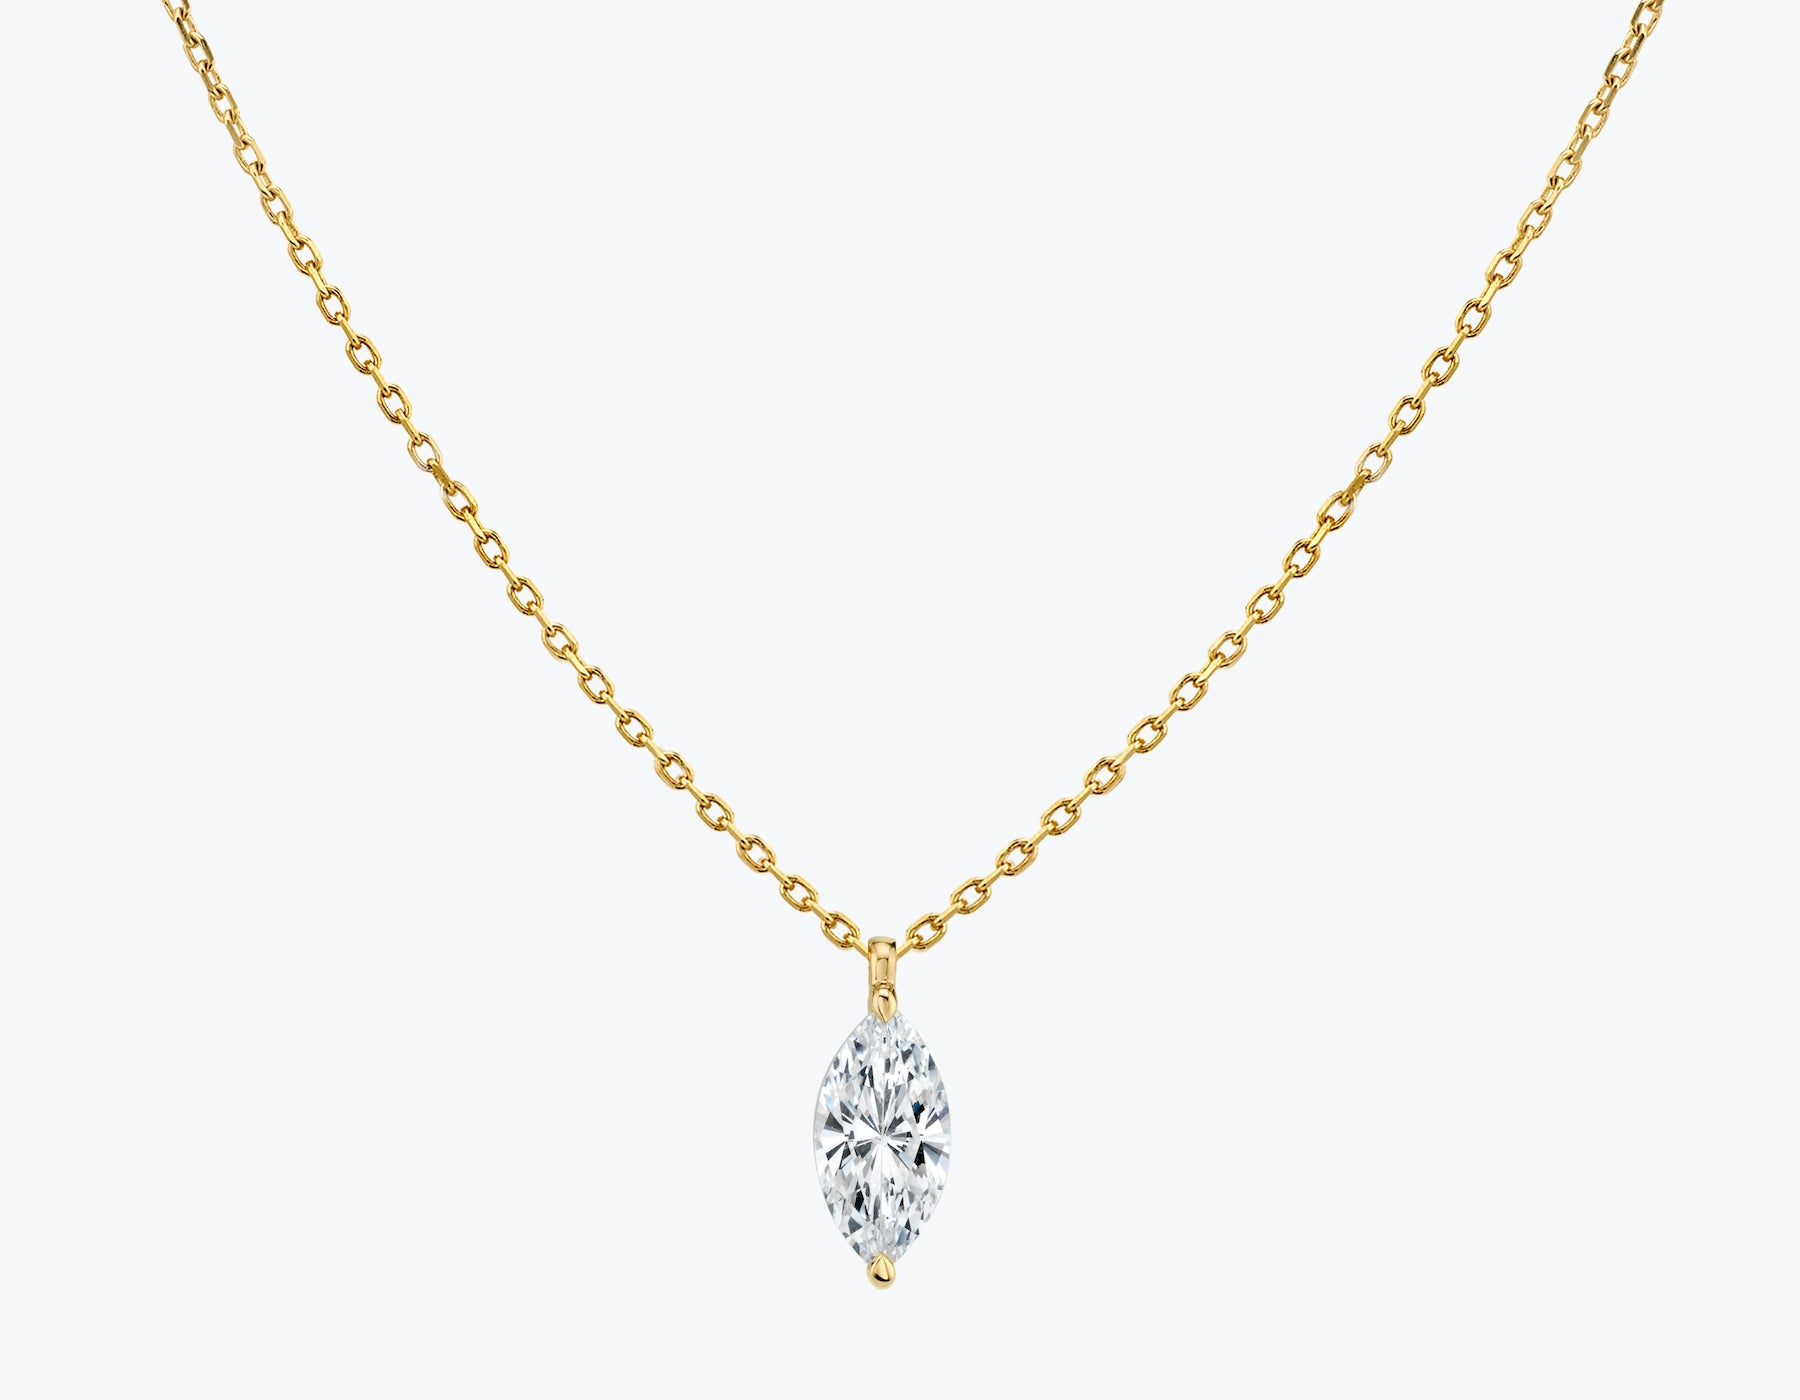 Vrai 14K solid gold solitaire marquise diamond pendant necklace 1ct minimalist delicate, 14K Yellow Gold